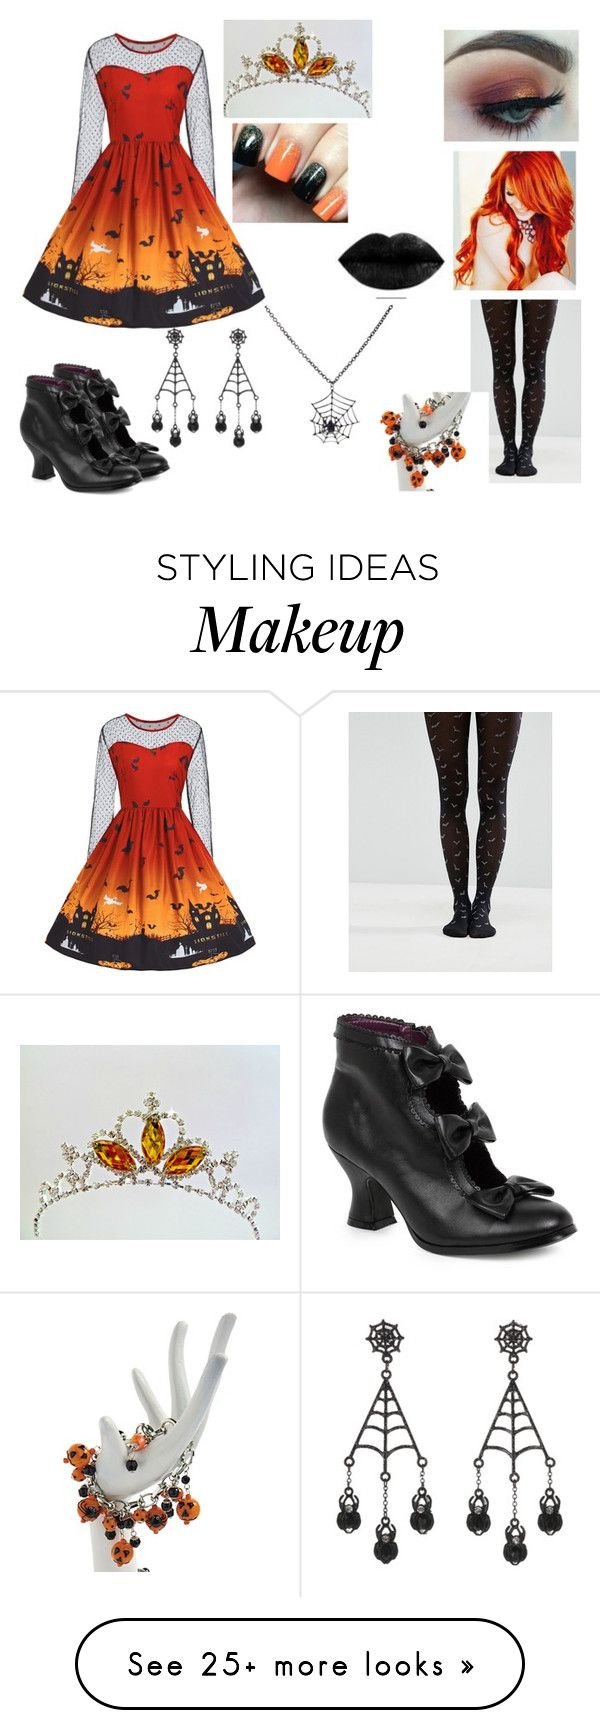 """Halloween Queen of Scream"" by judycrawford427 on Polyvore featuring Morphe, ASOS, George, Grandin Road and Carole"